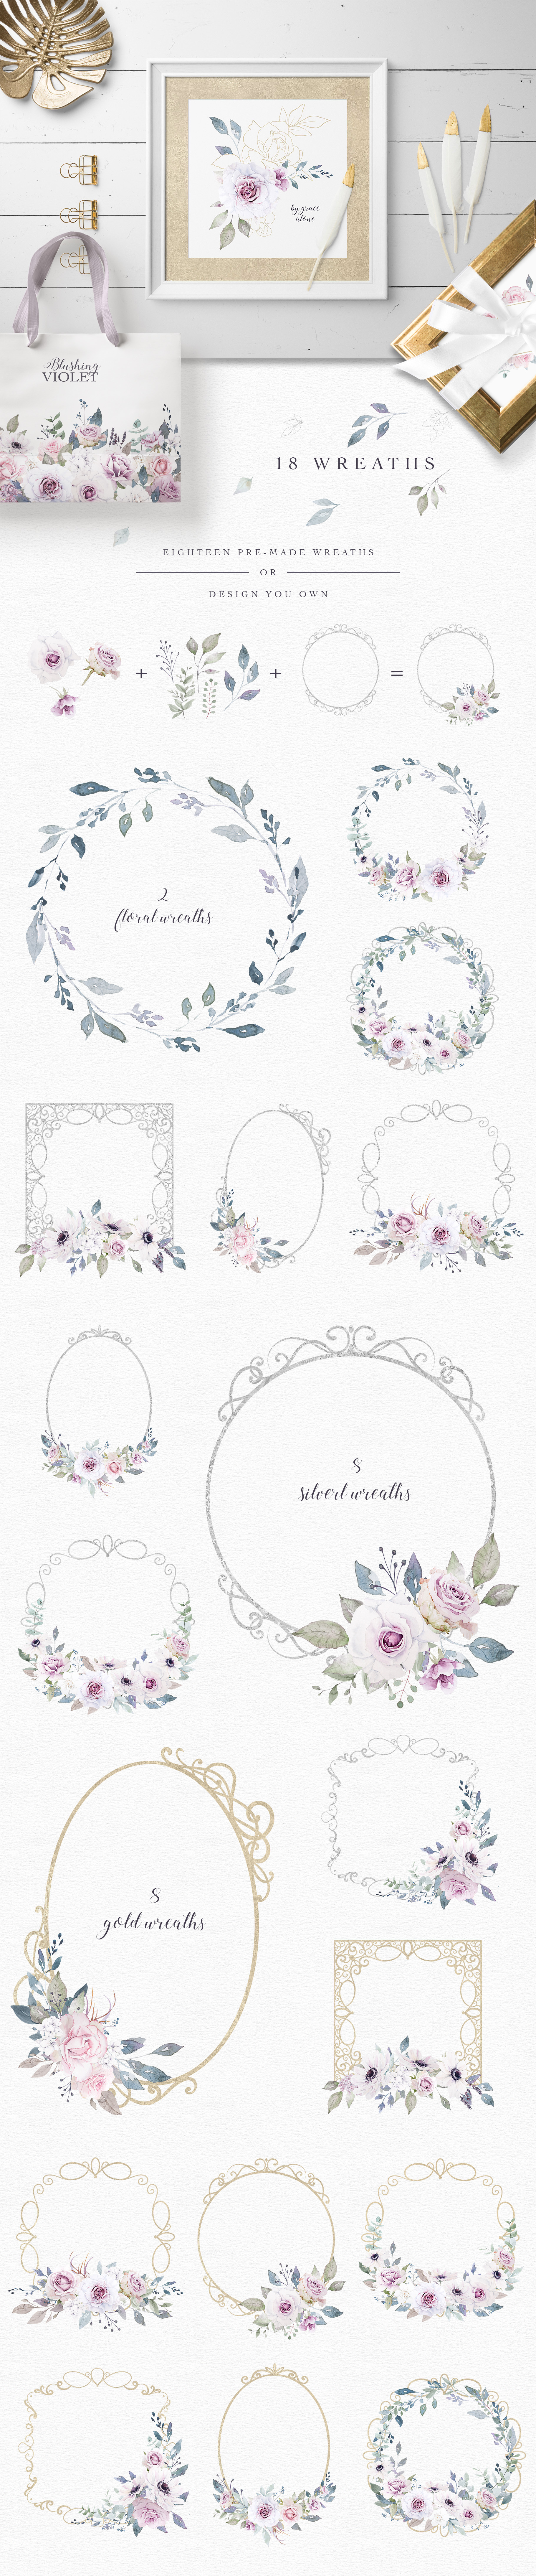 Blushing Violet Watercolor Clipart Collection example image 6